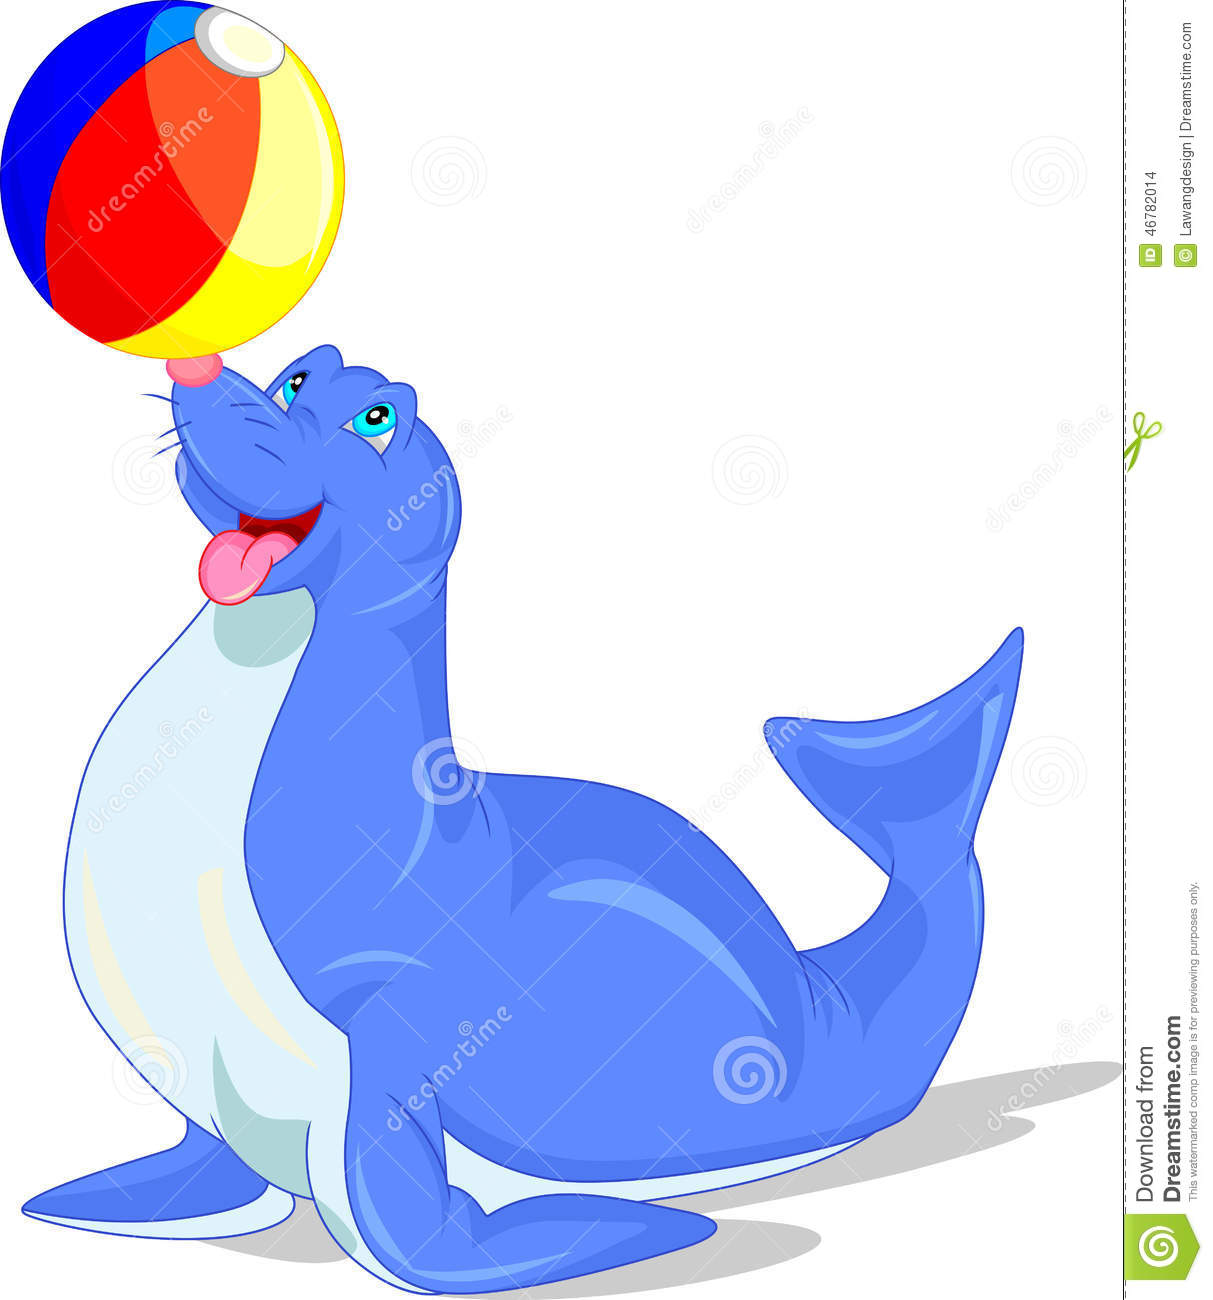 Illustration Of Circus Seal Playing A Ball Stock Vector